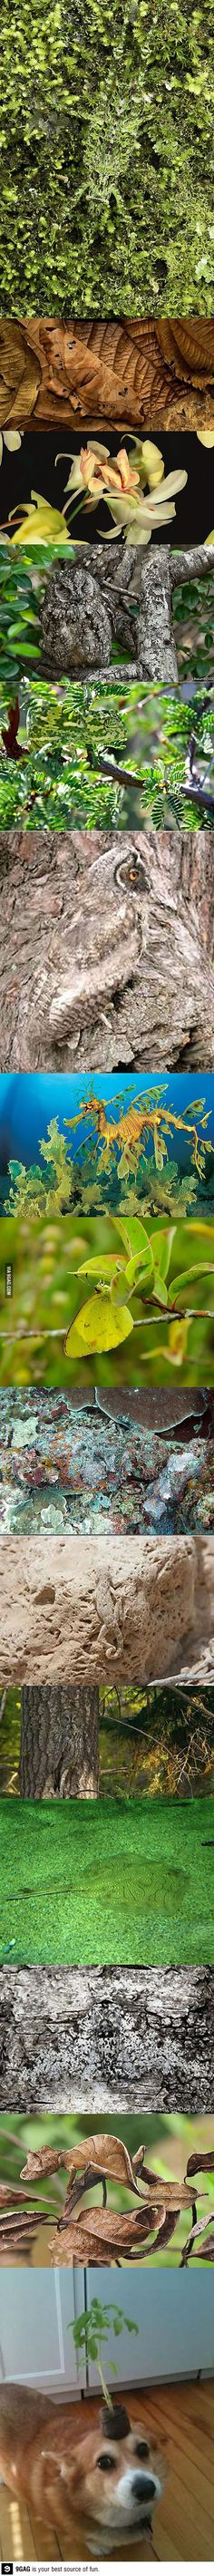 Camouflage in nature